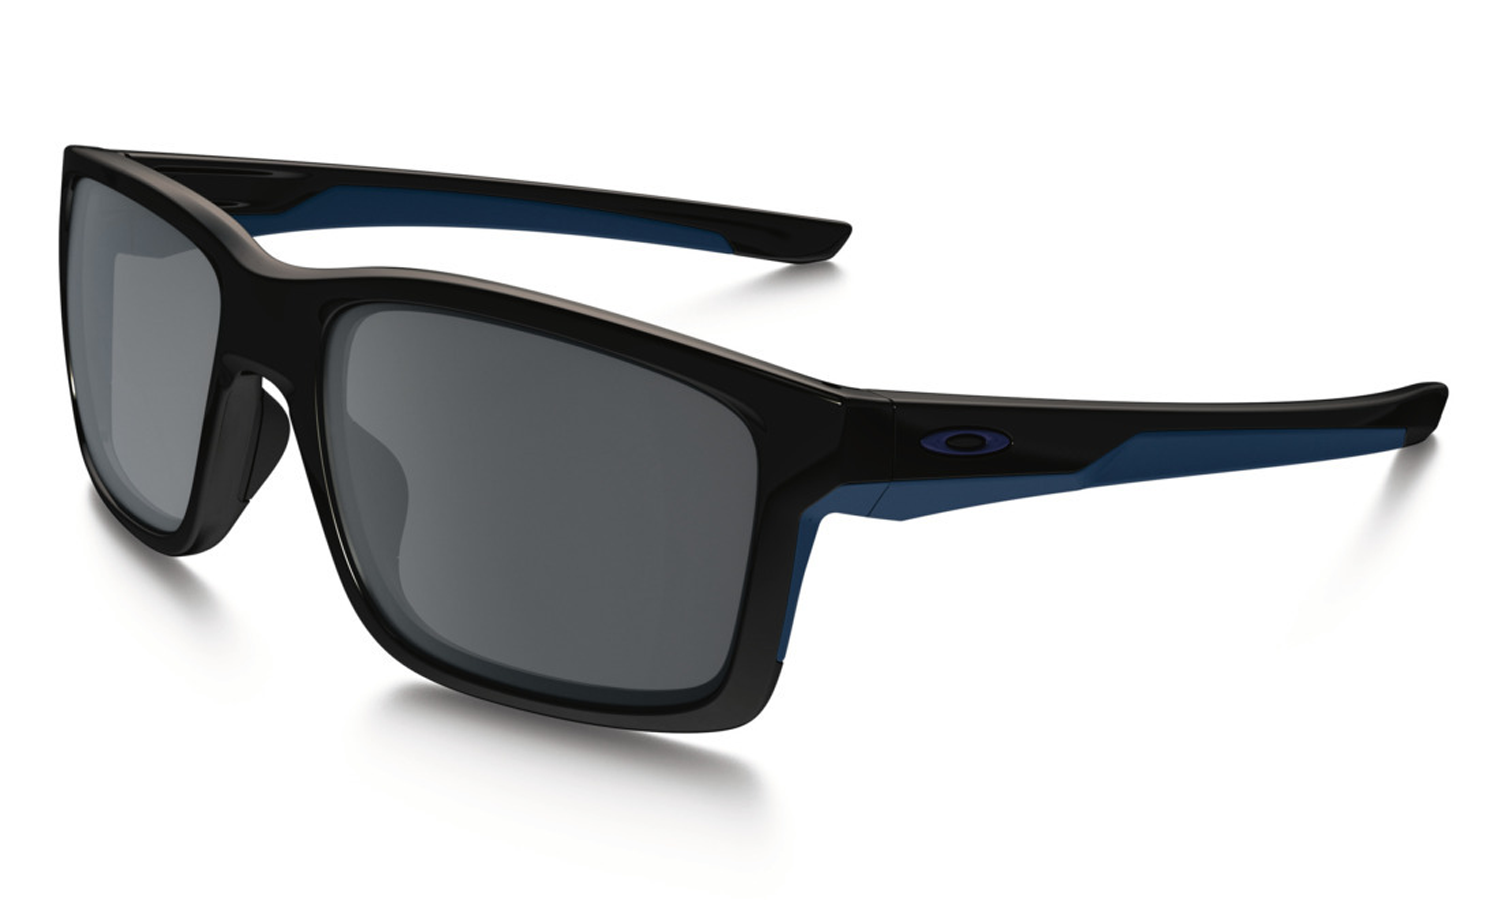 a9a15737b45 Sentinel Oakley Sunglasses - Mainlink - Polished Black Navy